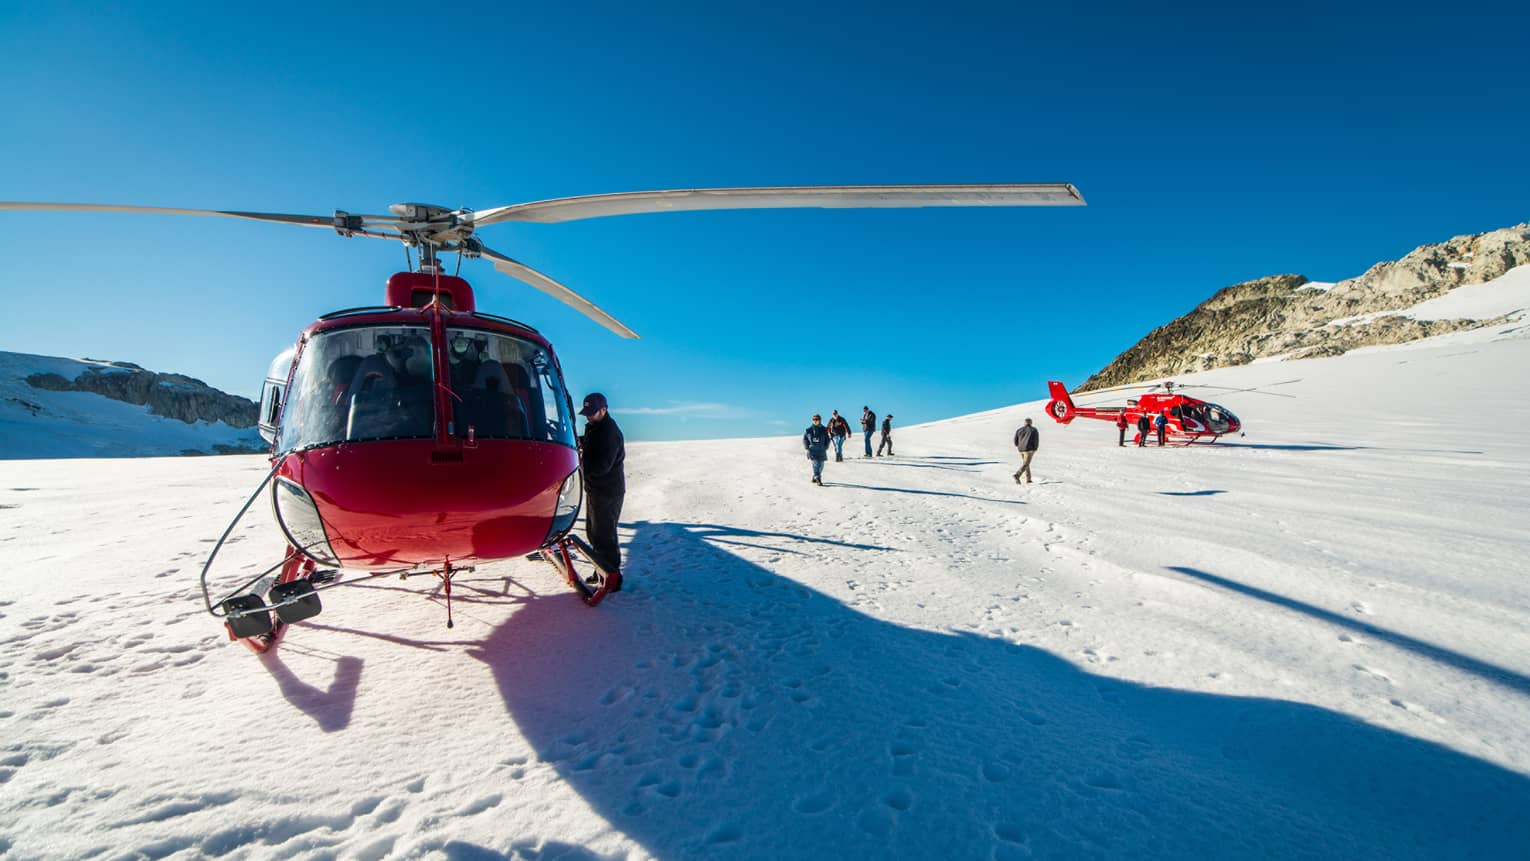 Front view of man getting into red helicopter parked on snowy mountain peak